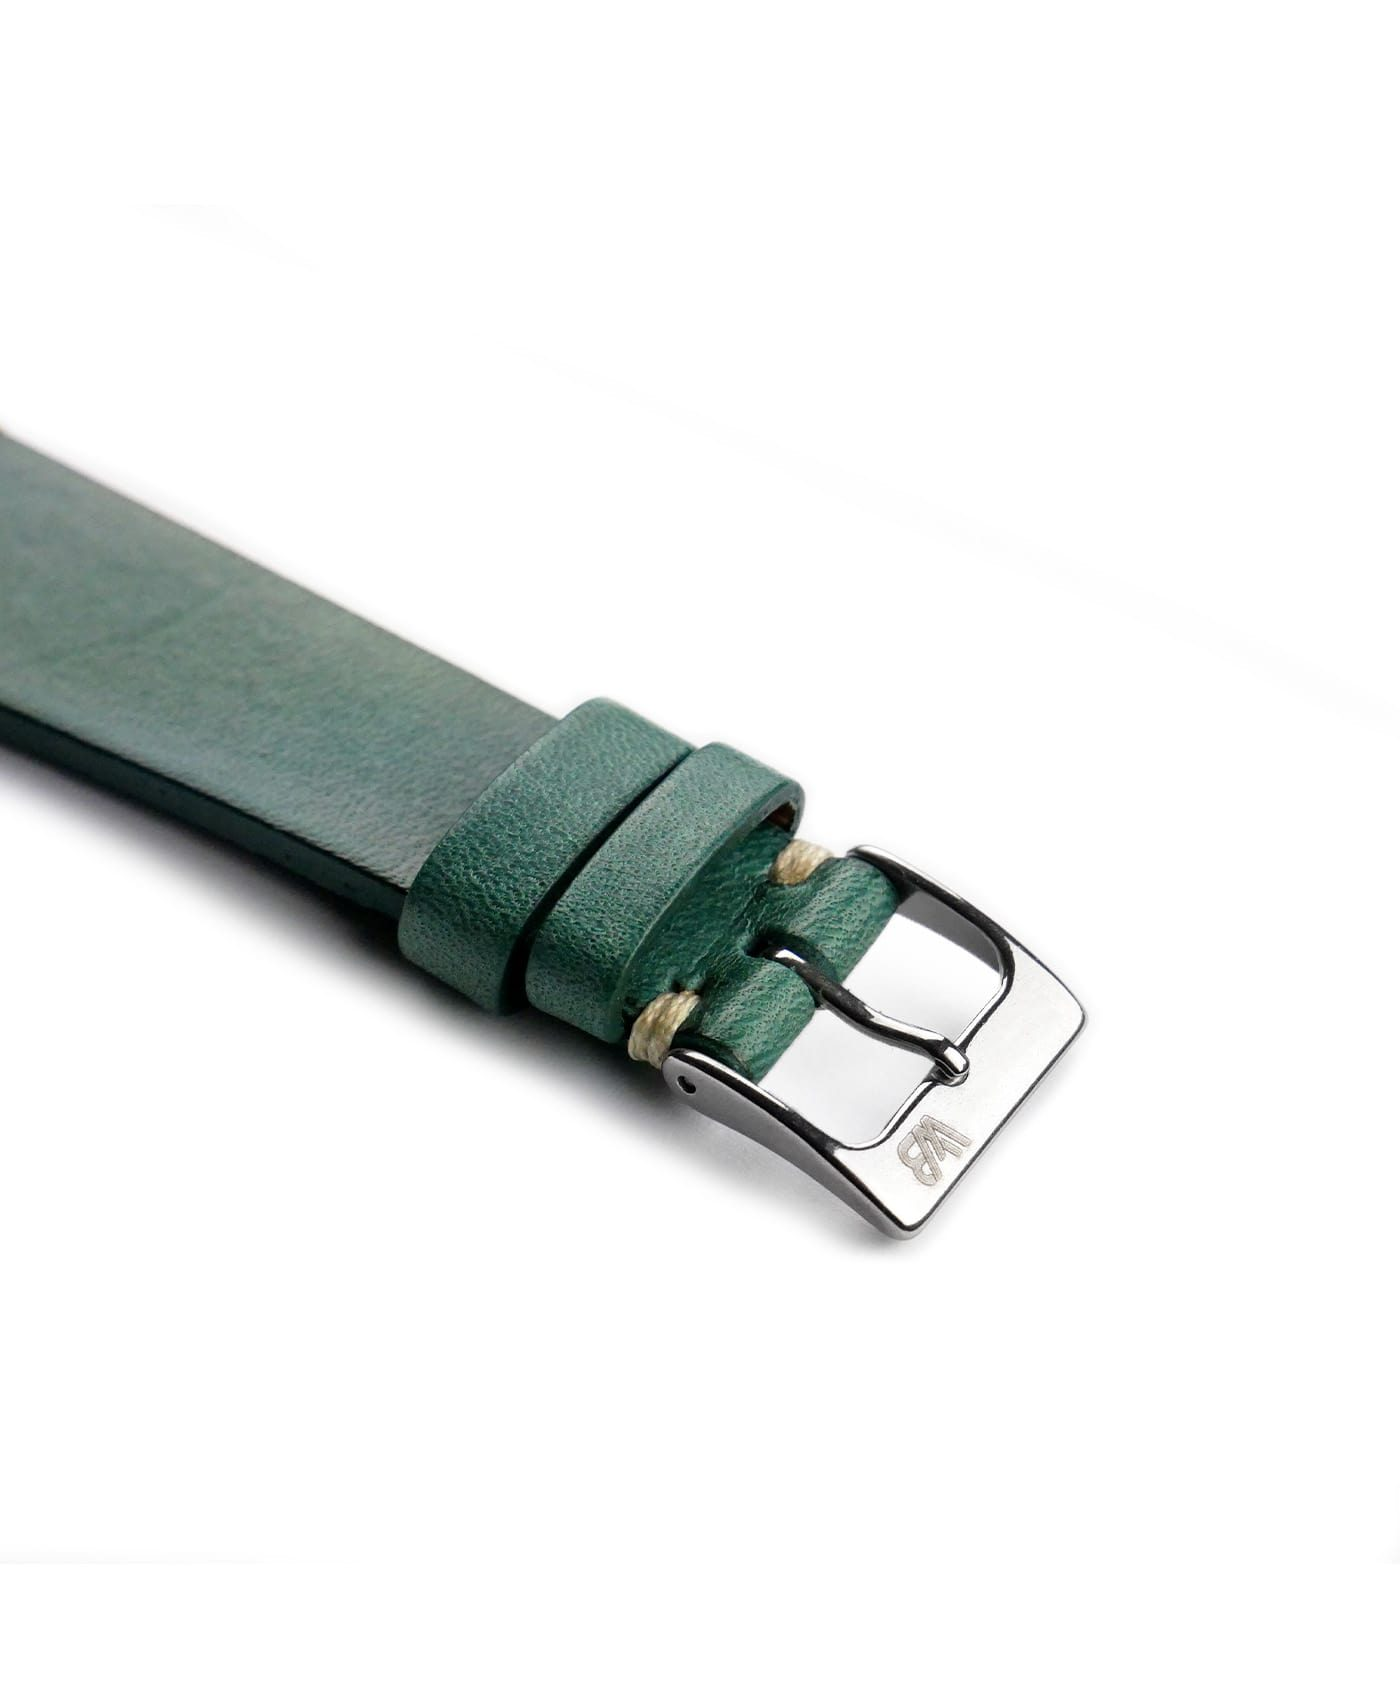 WB original premium vintage leather watch strap petrol green side buckle